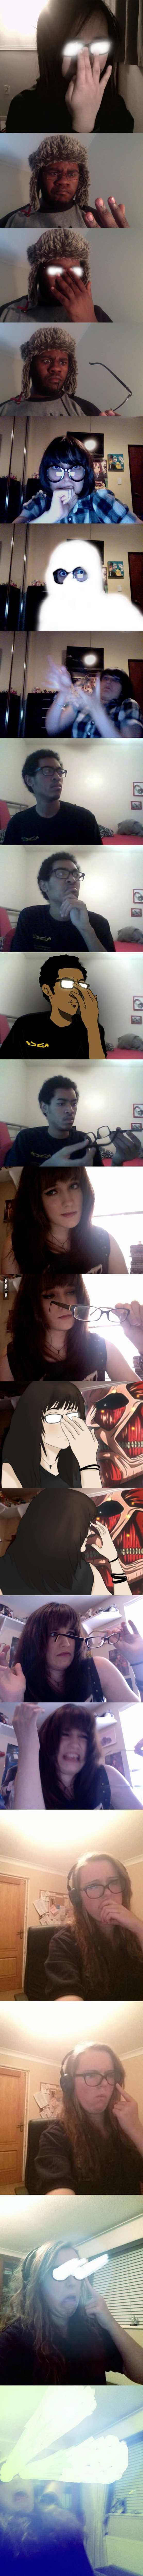 People Doing The Anime Glasses Thing.